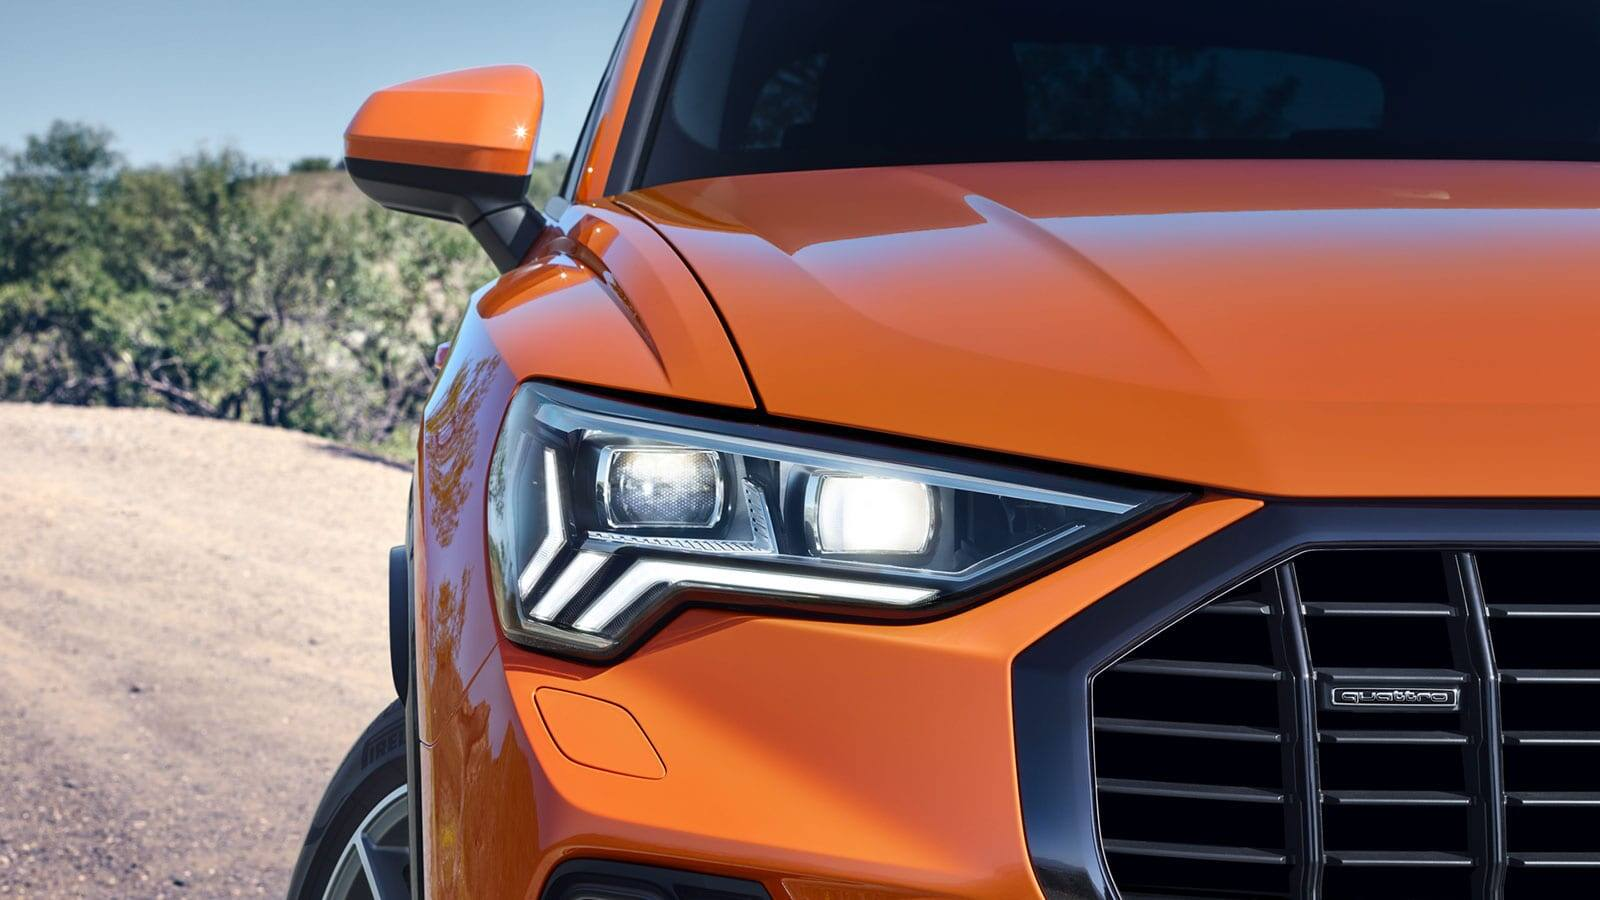 Lighting Technology. The new Audi Q3